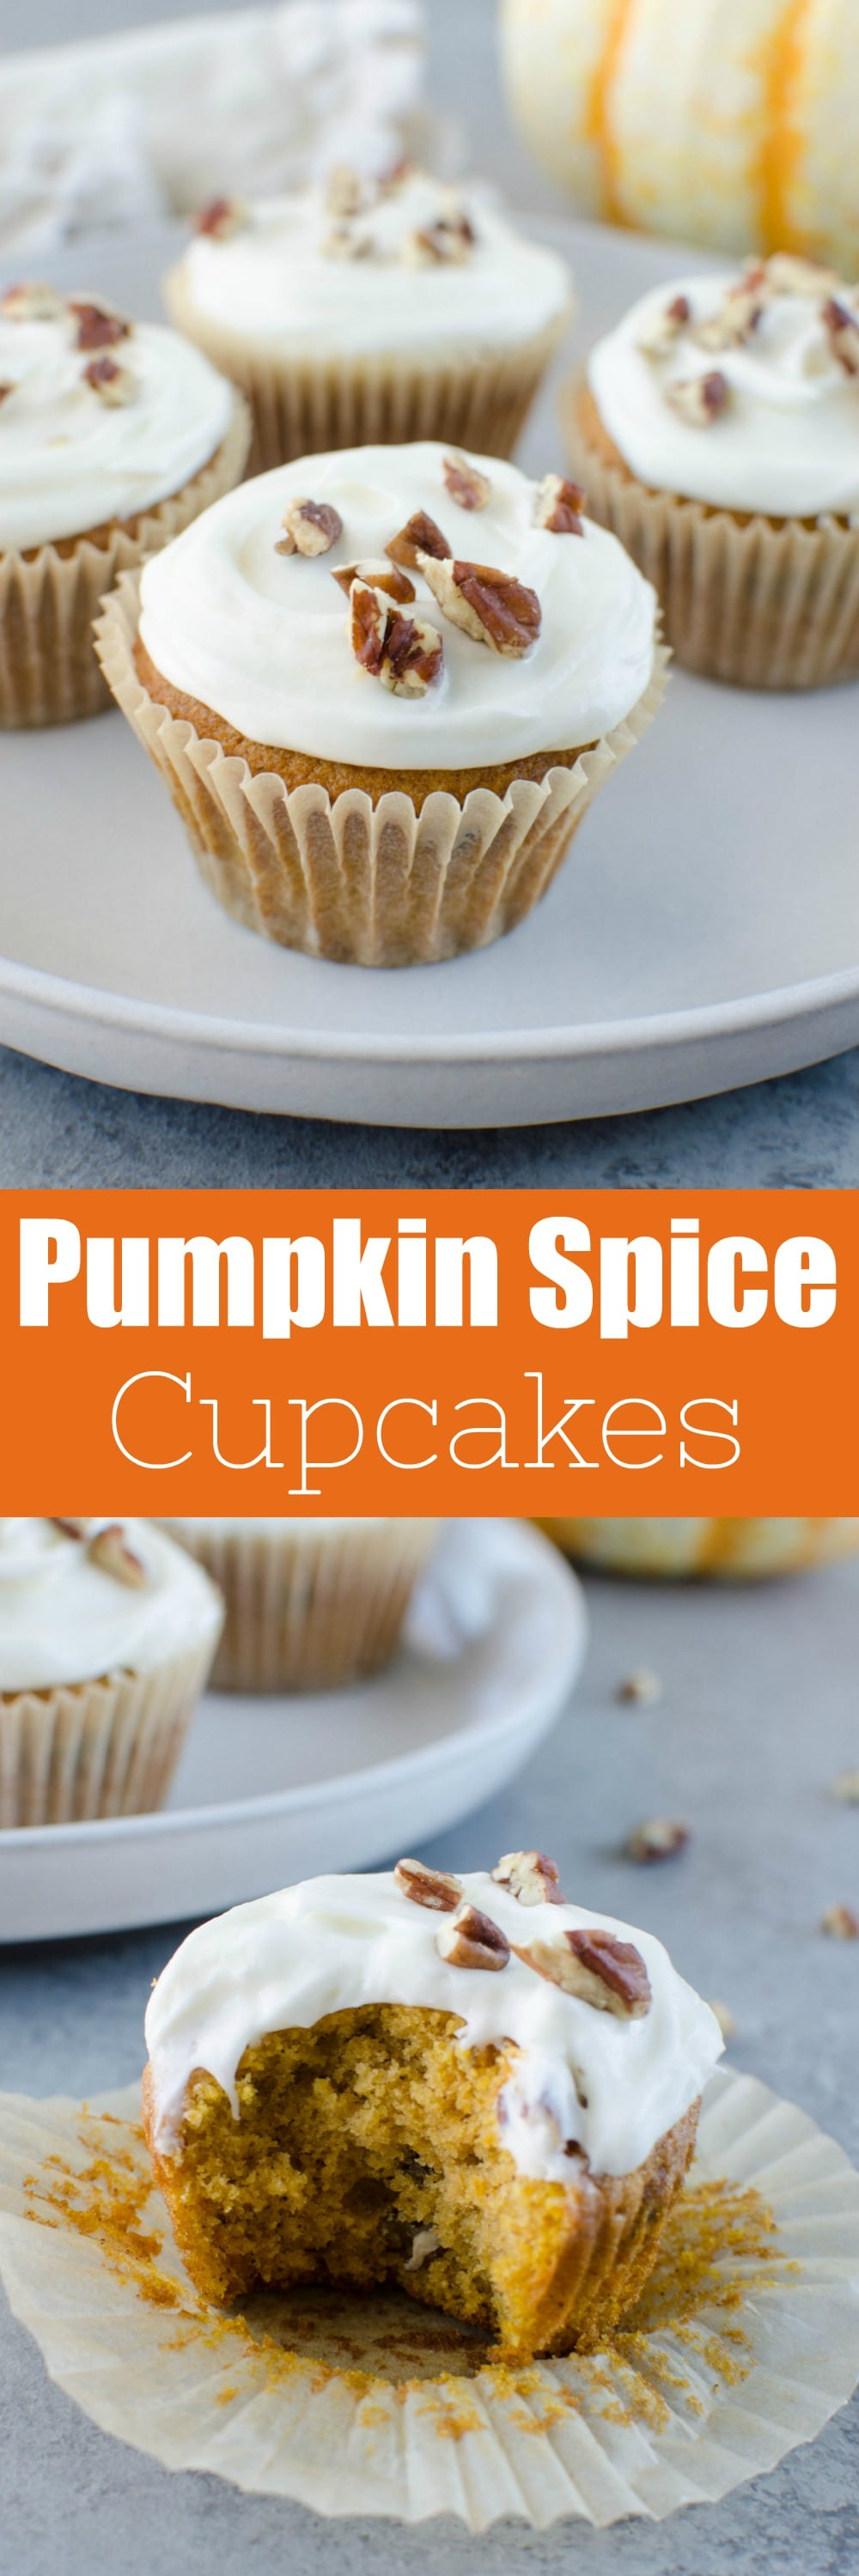 Pumpkin Spice Cupcakes - moist pumpkin cupcakes with pecans and raisins and topped with cream cheese frosting!